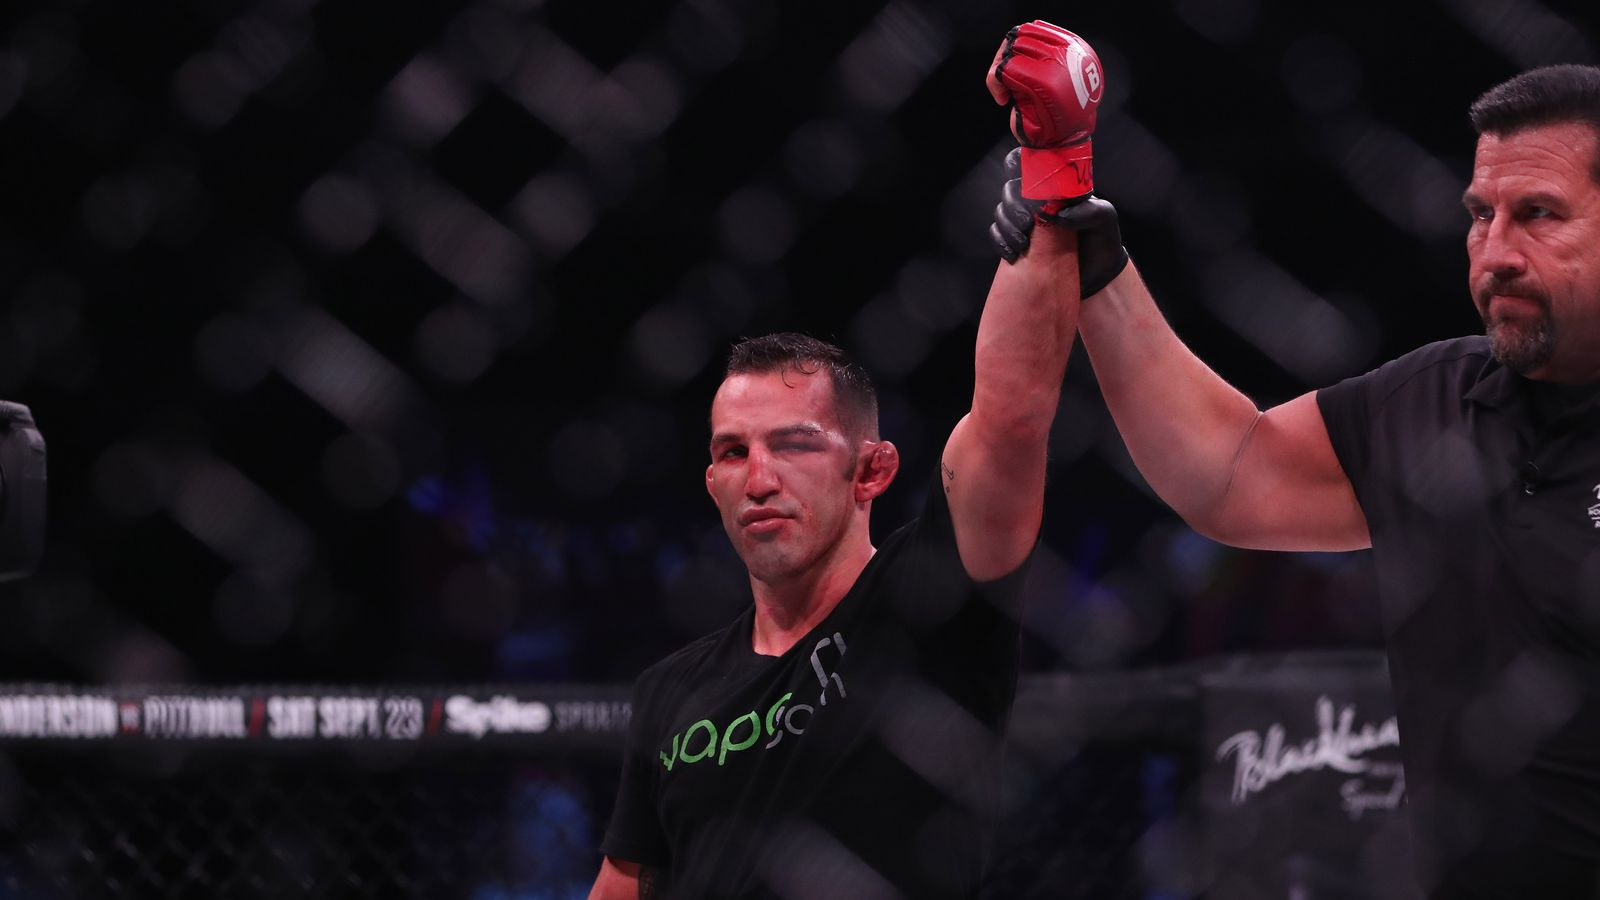 Campos Out To 'Break' Straus In San Jose